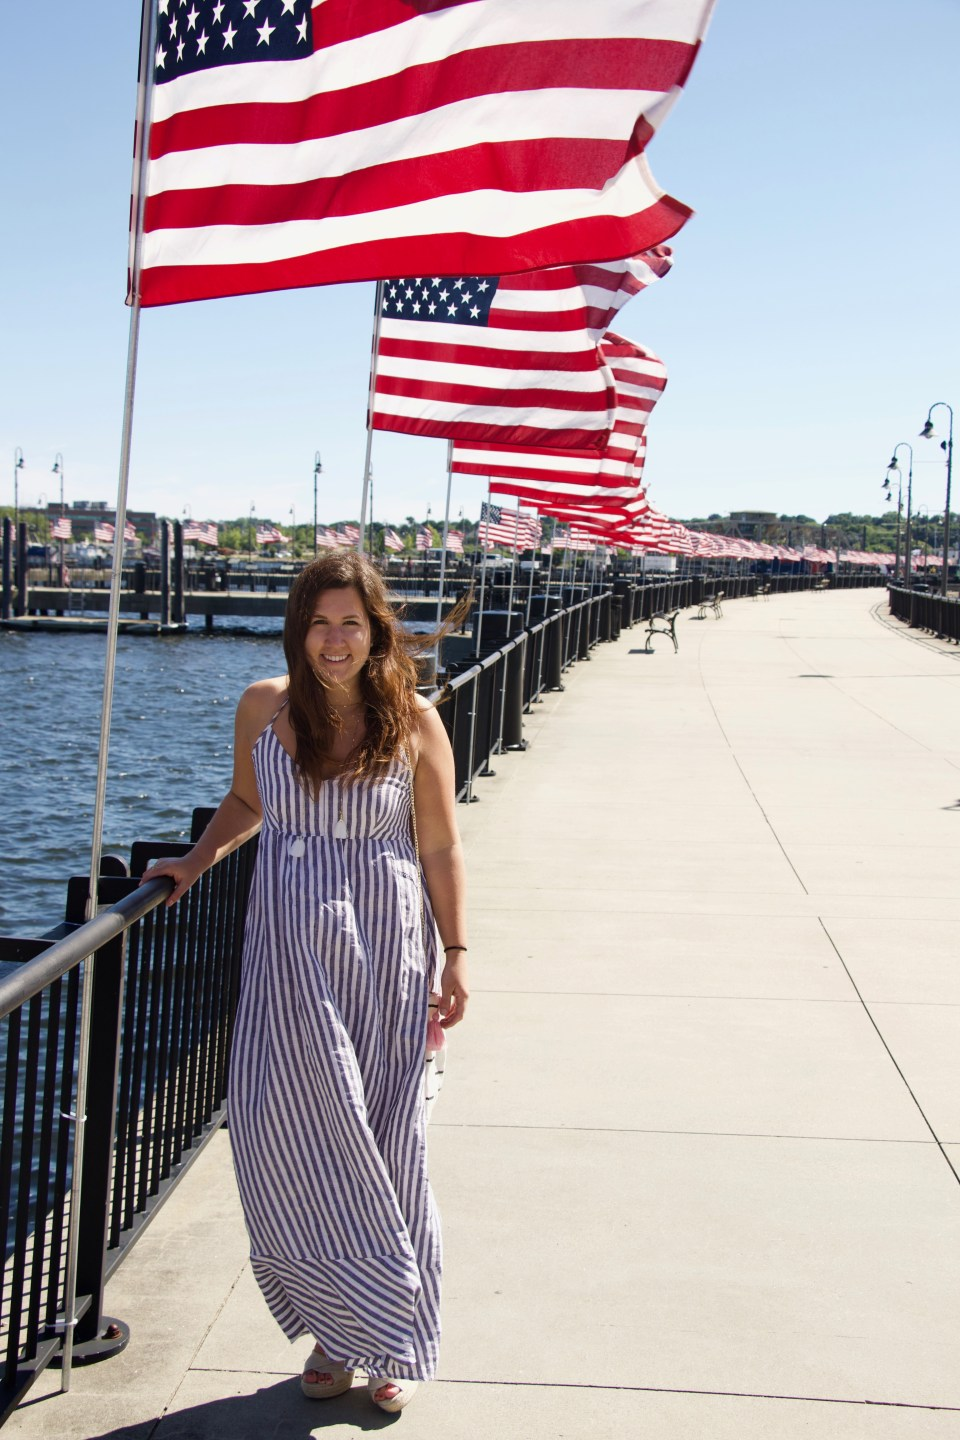 Linen Maxi Dress - New London 4th of July